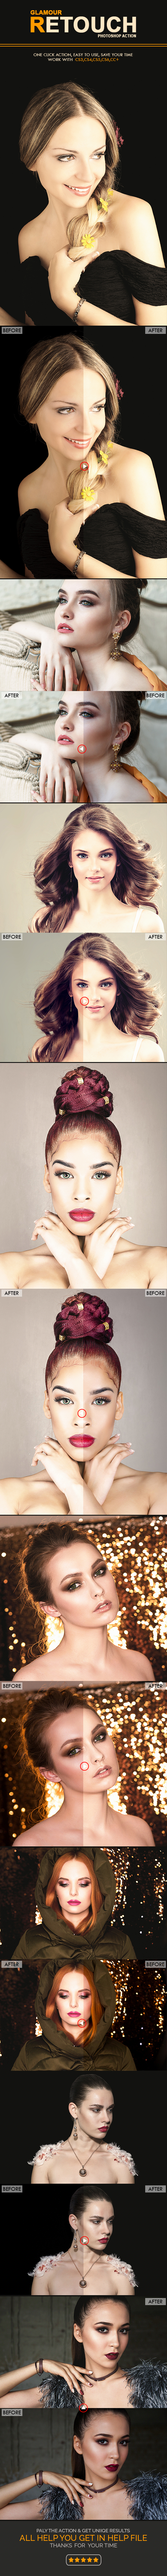 Glamour Retouch Photoshop Action - Photo Effects Actions